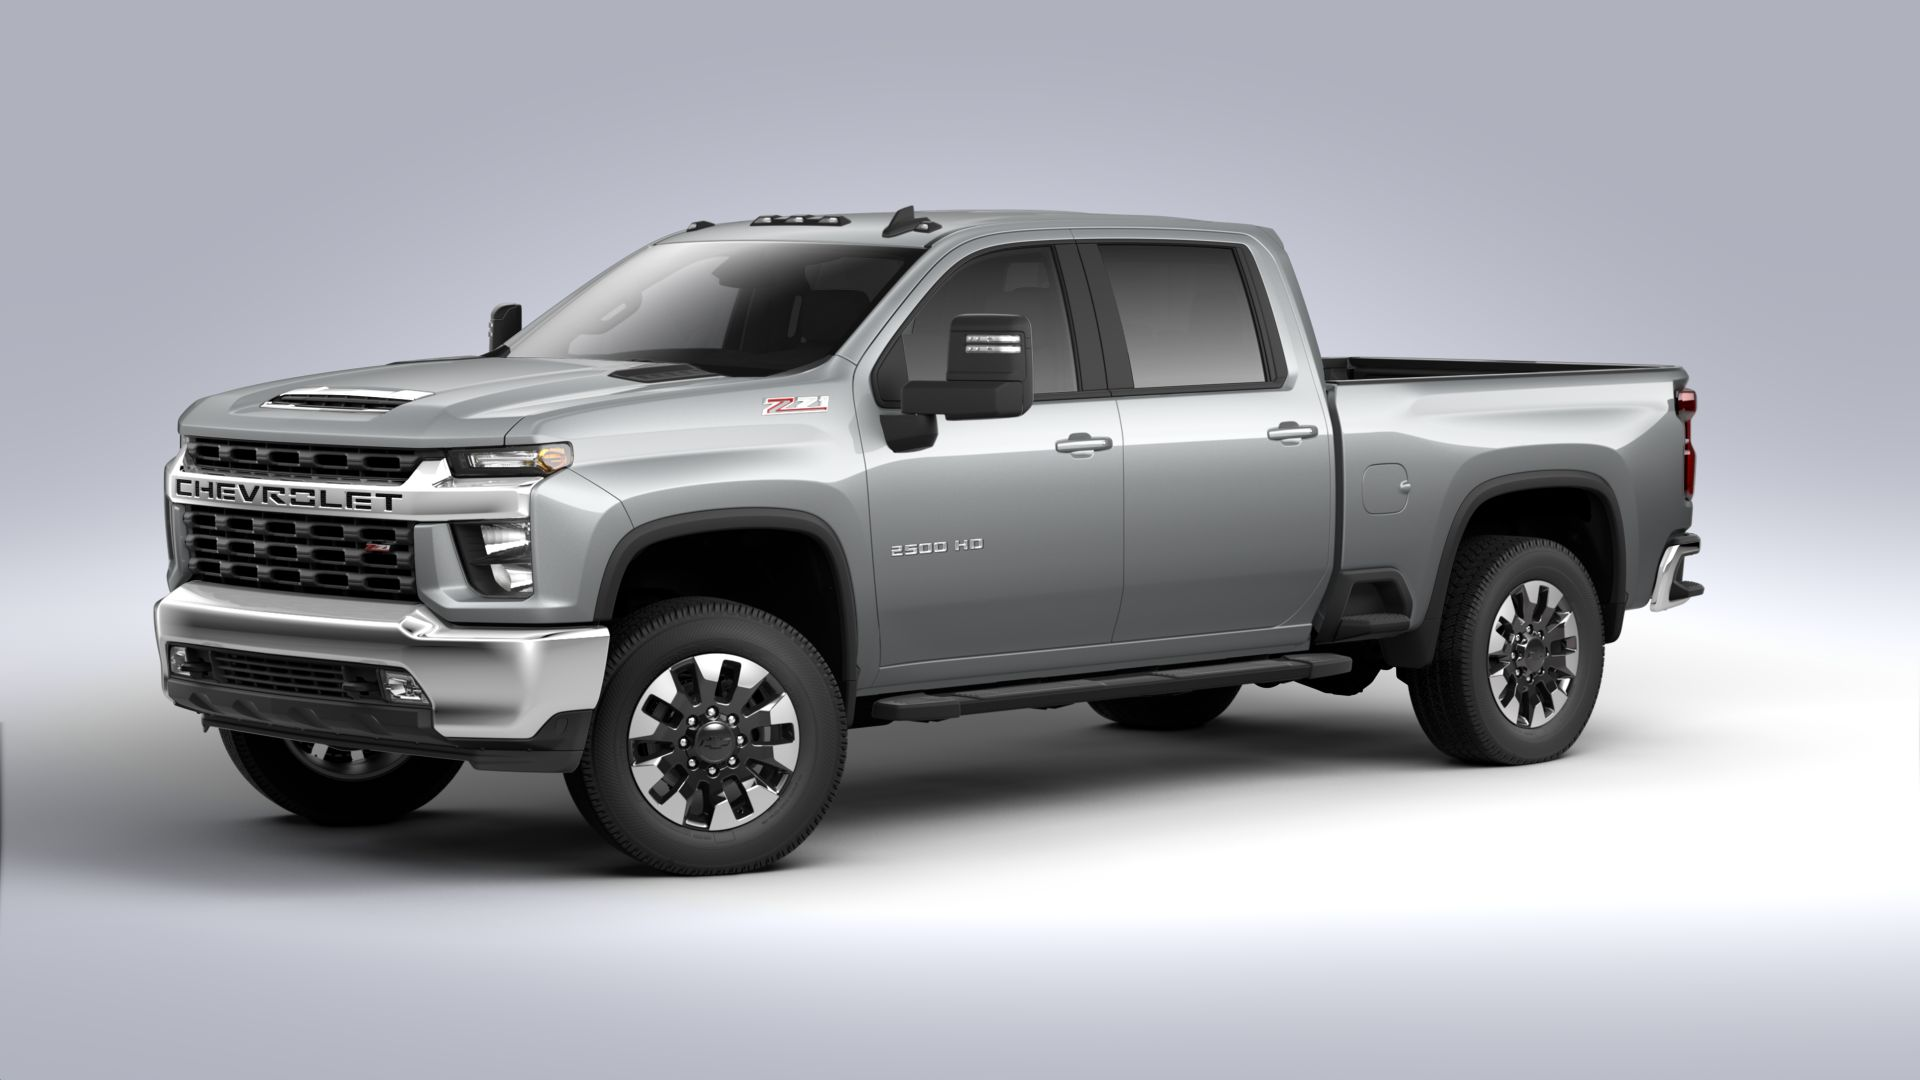 New 2020 Chevrolet Silverado 2500 HD LT FOUR WHEEL DRIVE Crew Cab